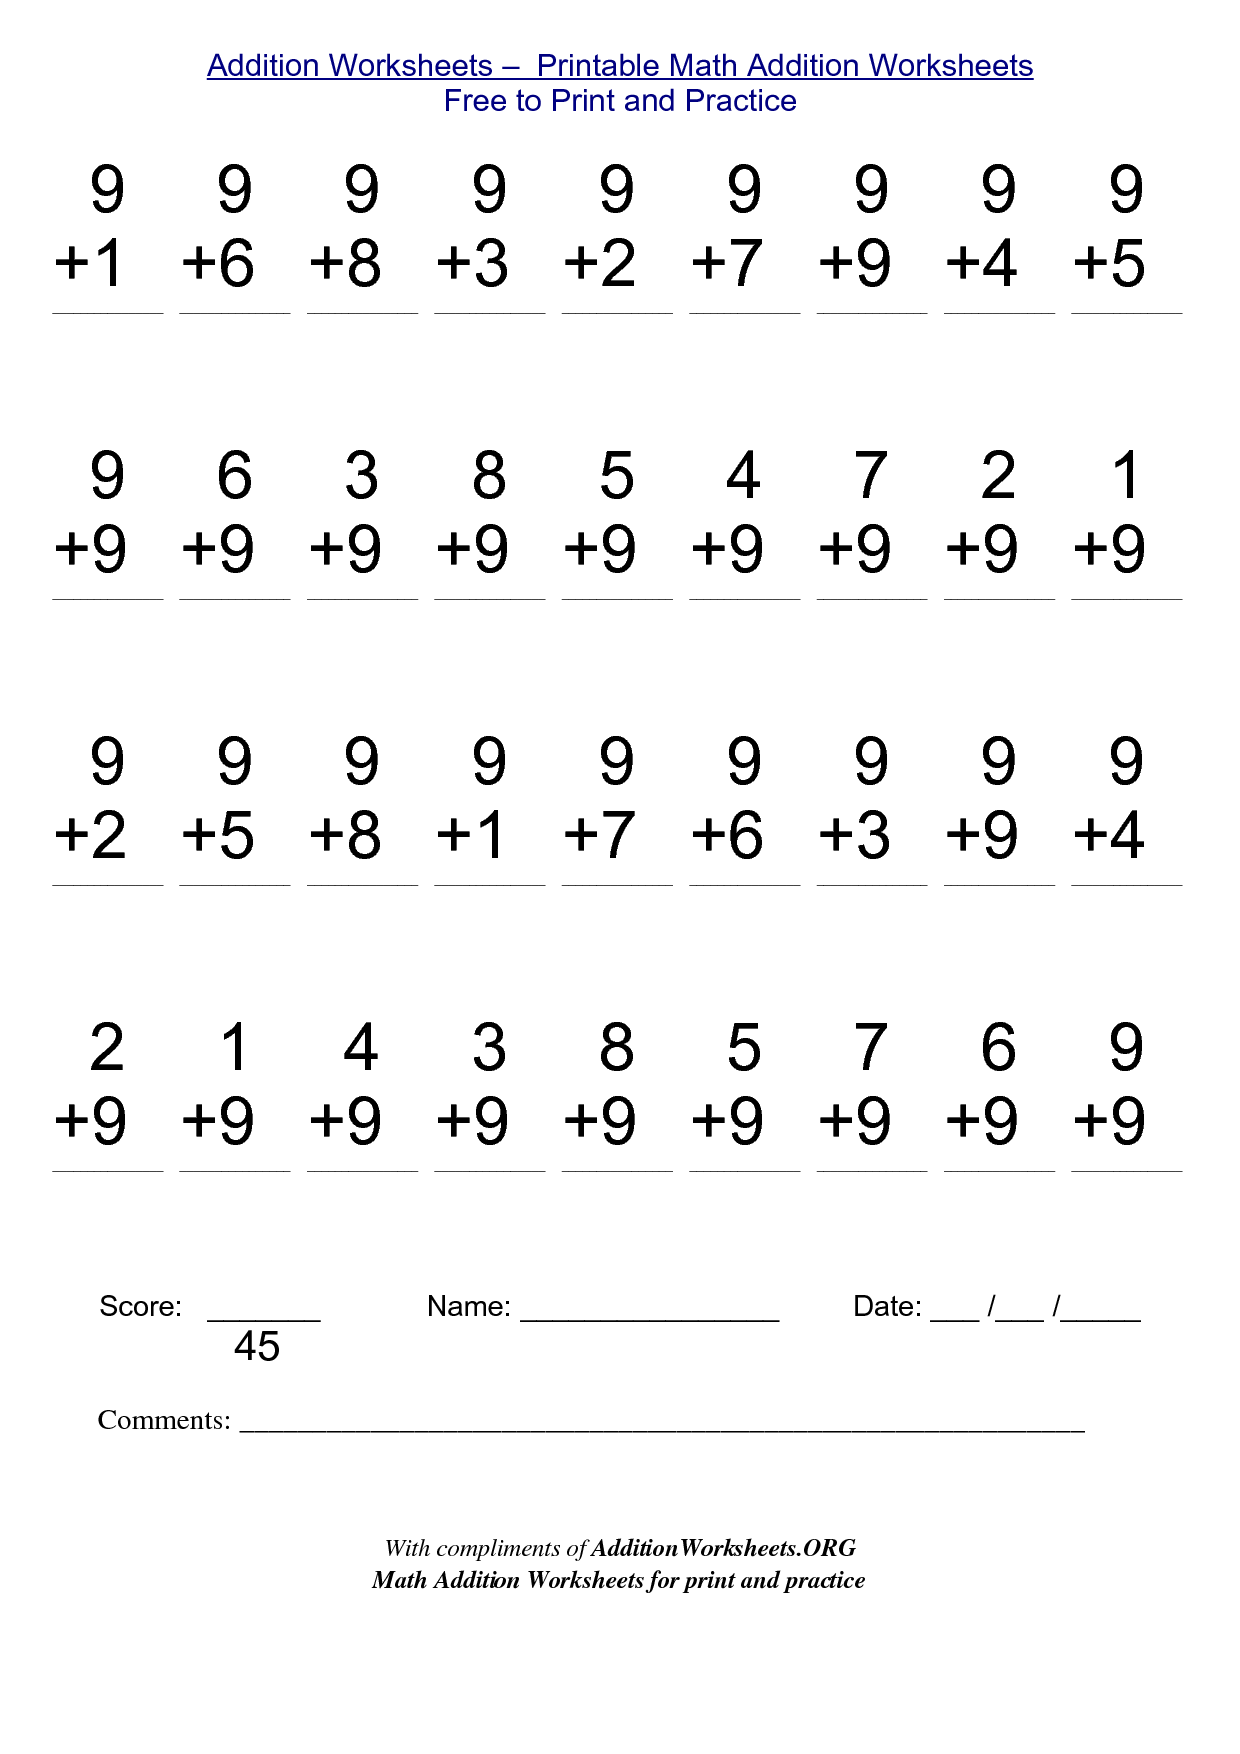 Math Worksheets For Free To Print